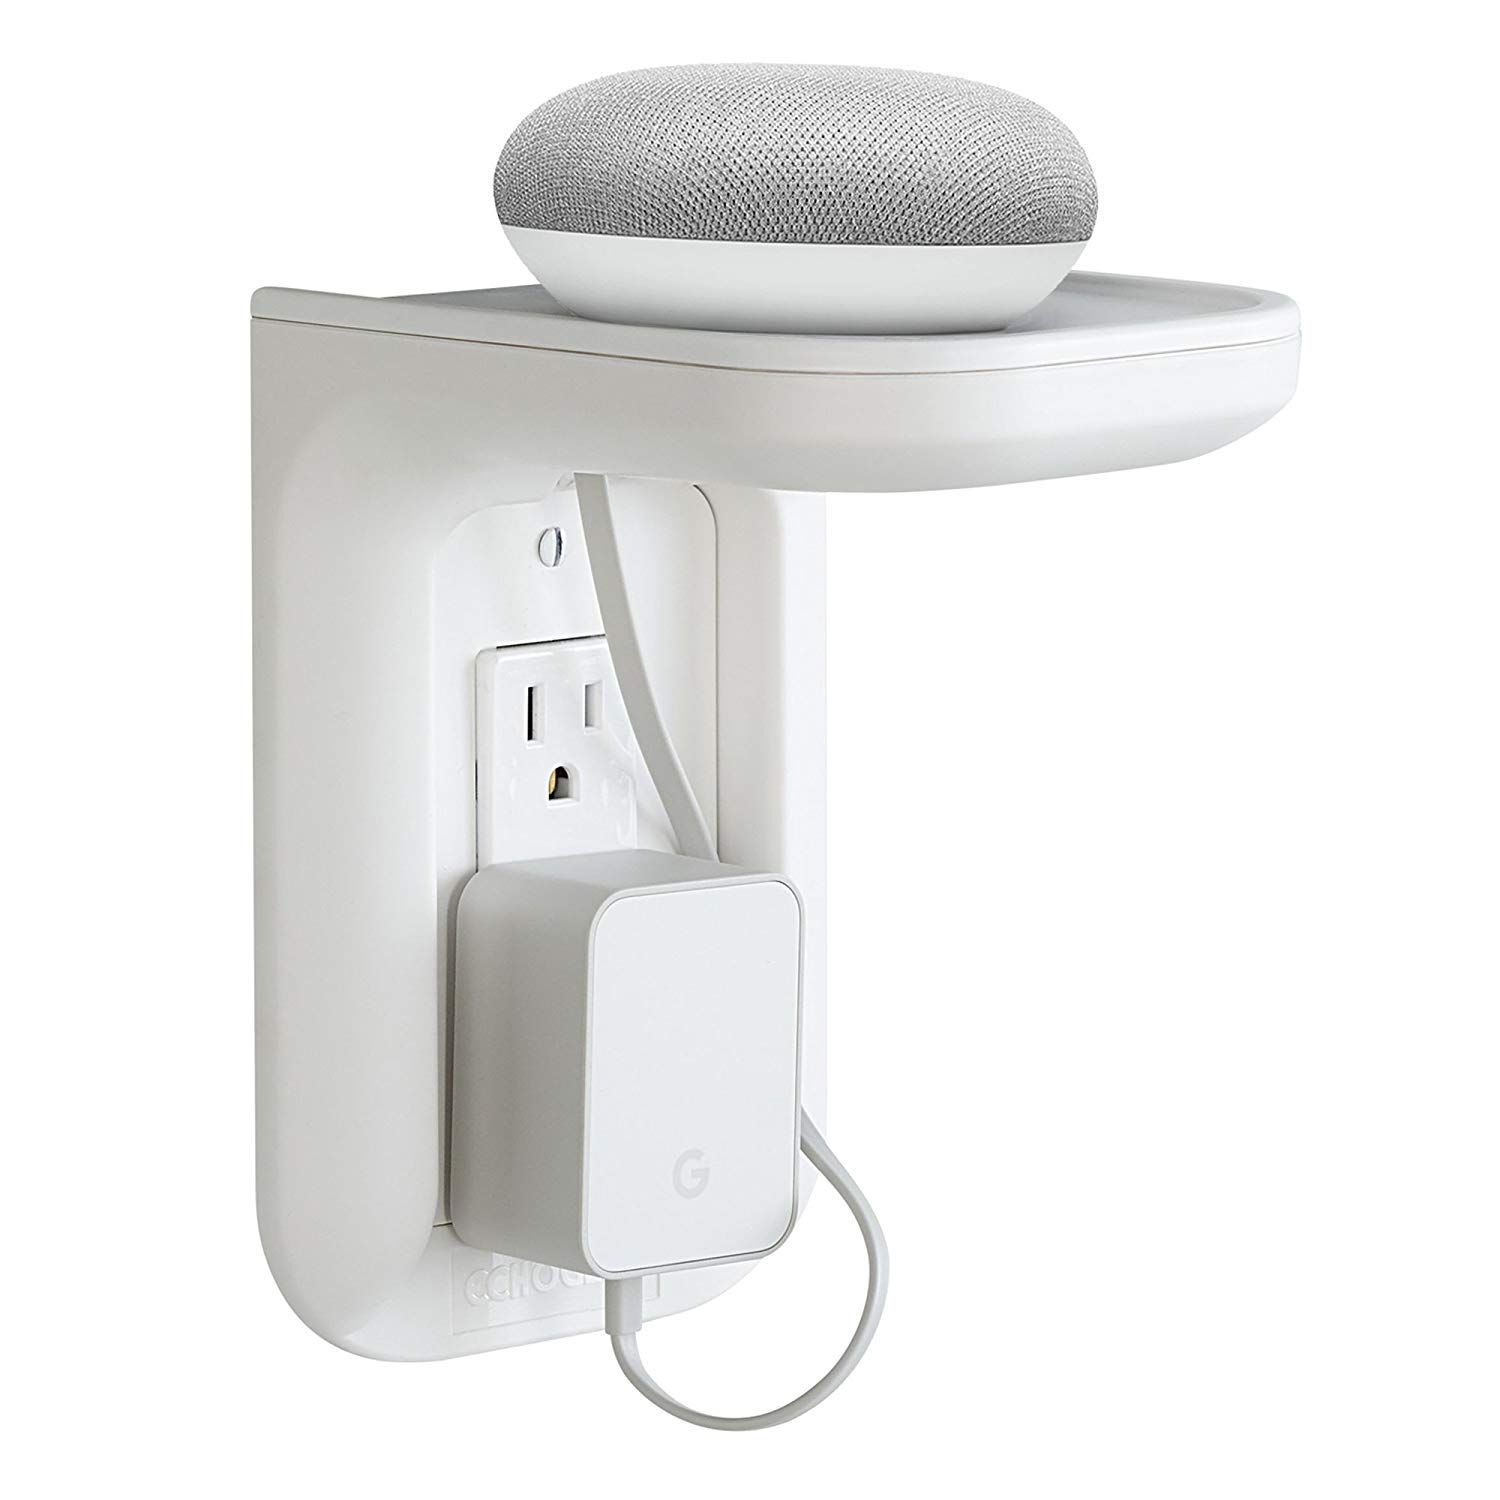 wall outlet shelf add a shelf to your outlets to save on wall outlet id=20254